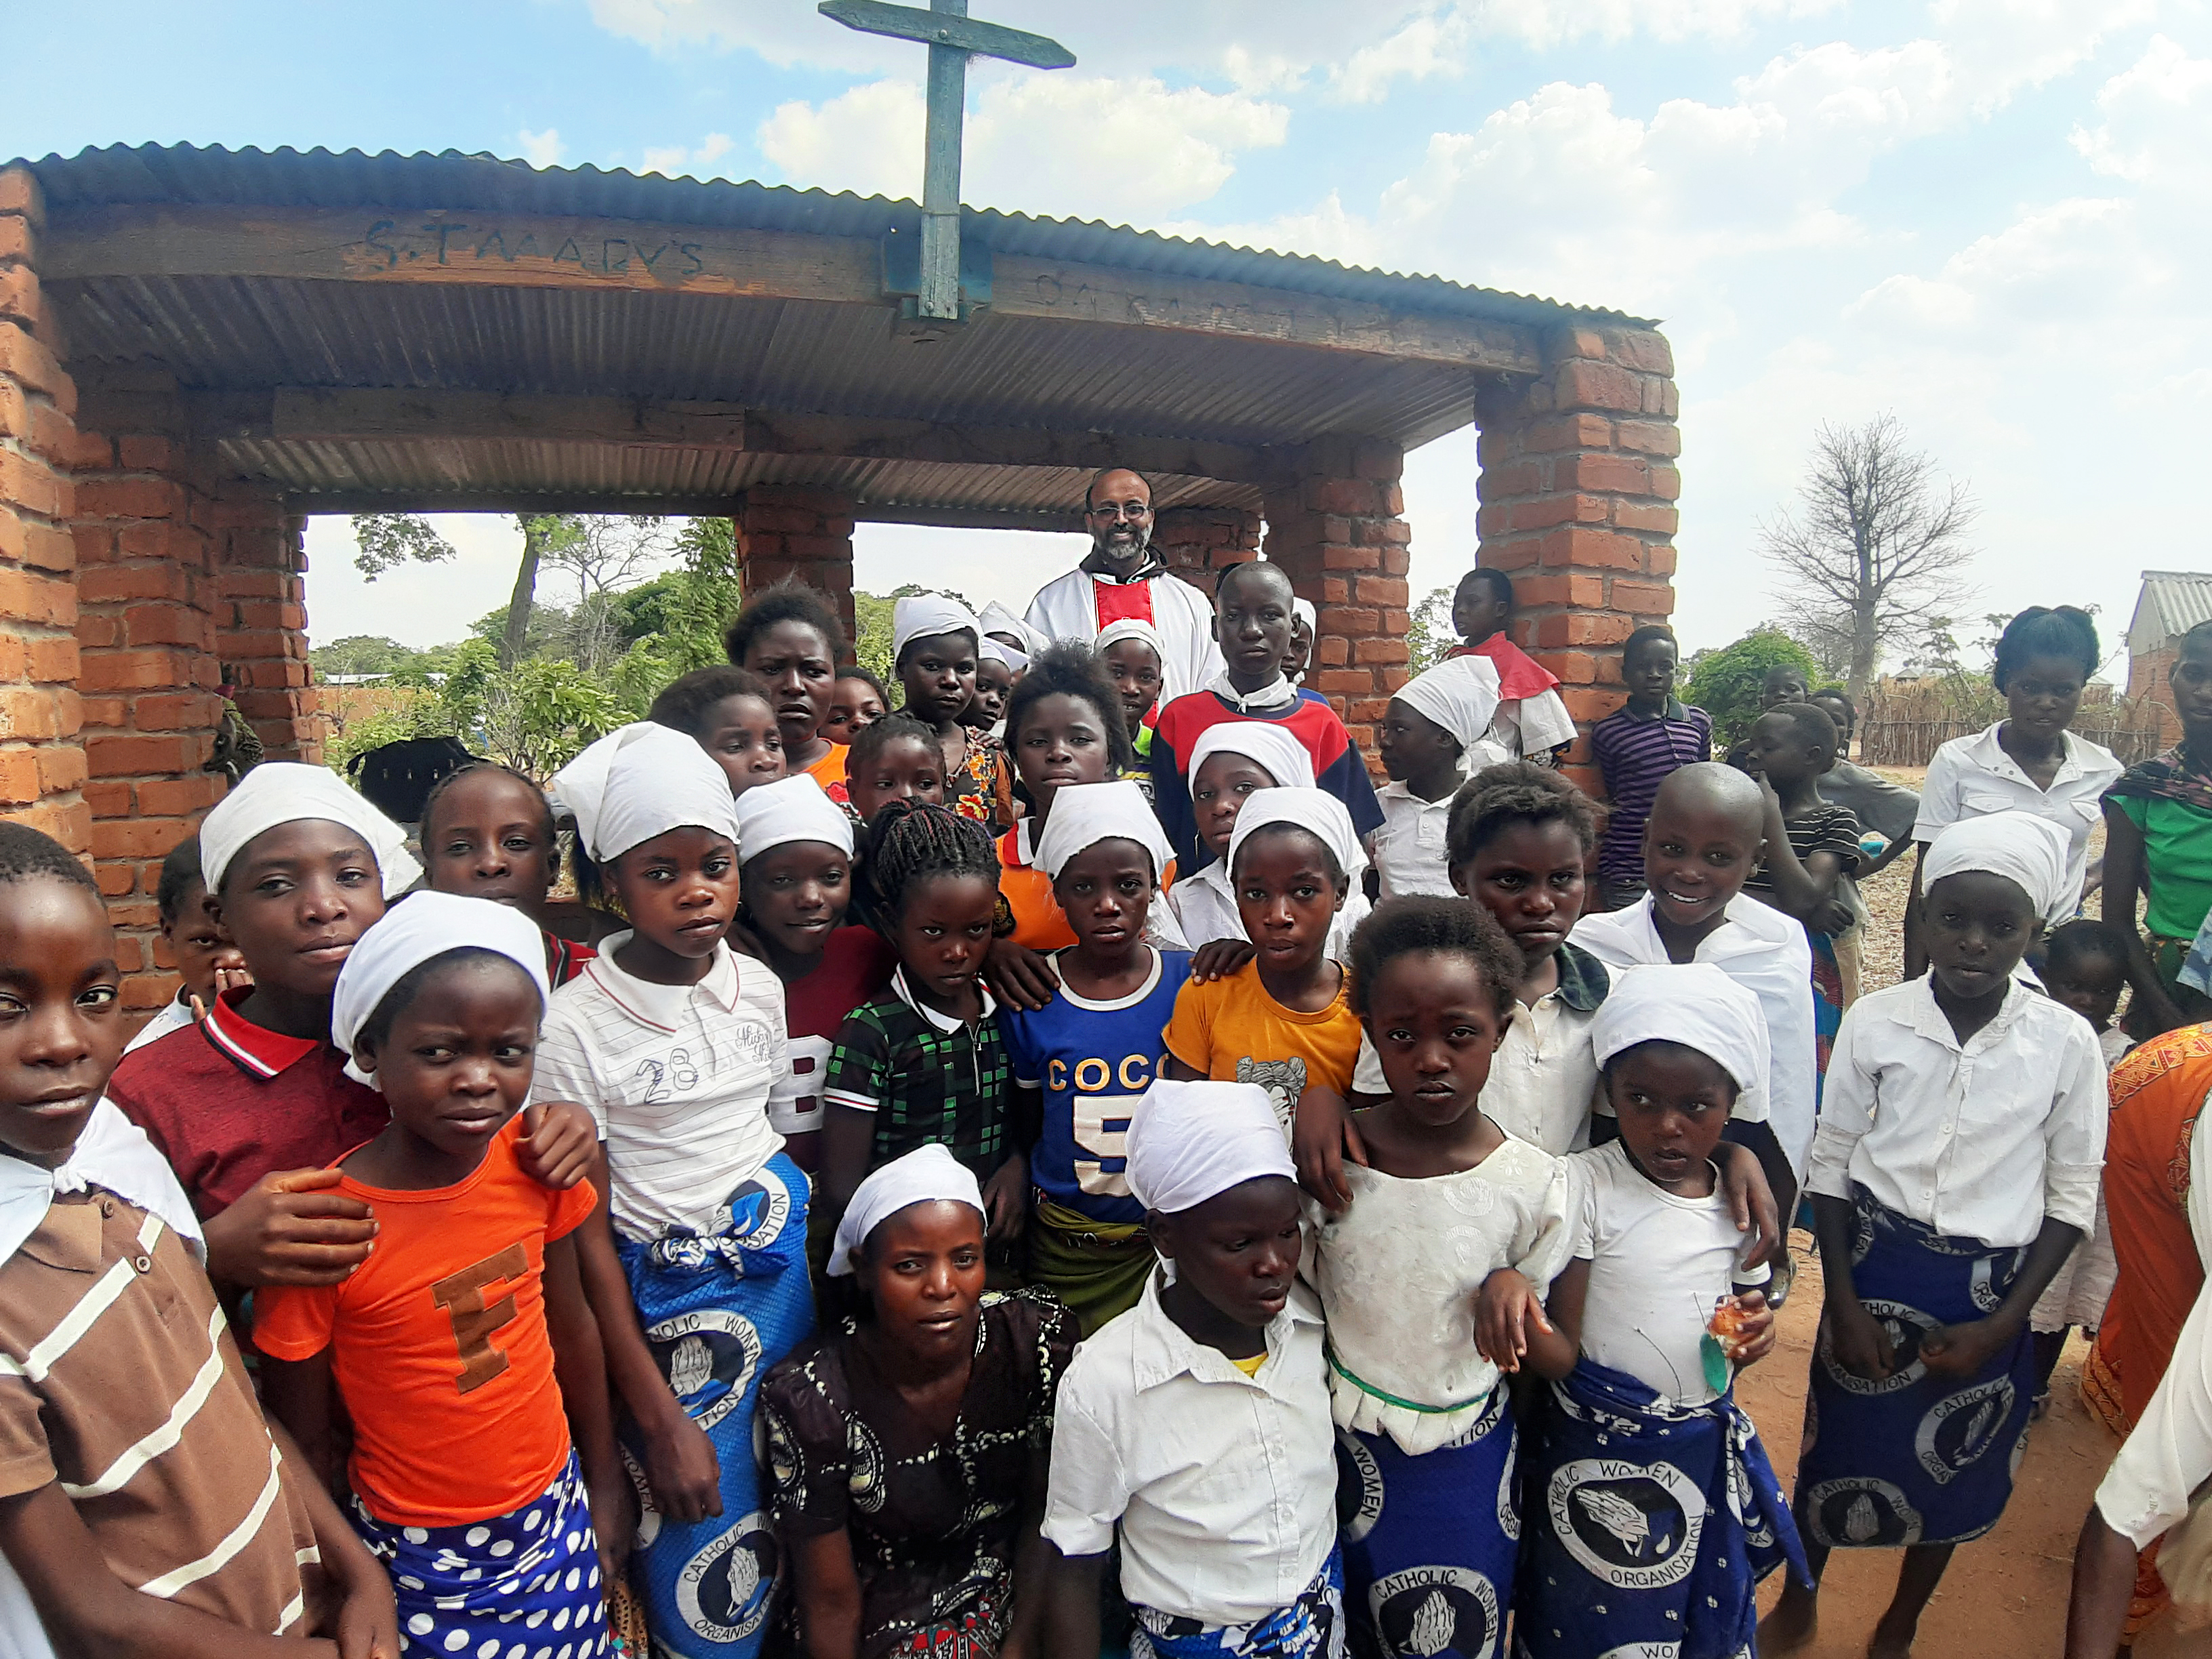 The seed of Thomas the Apostle bears fruit: missionaries from India serve in Africa